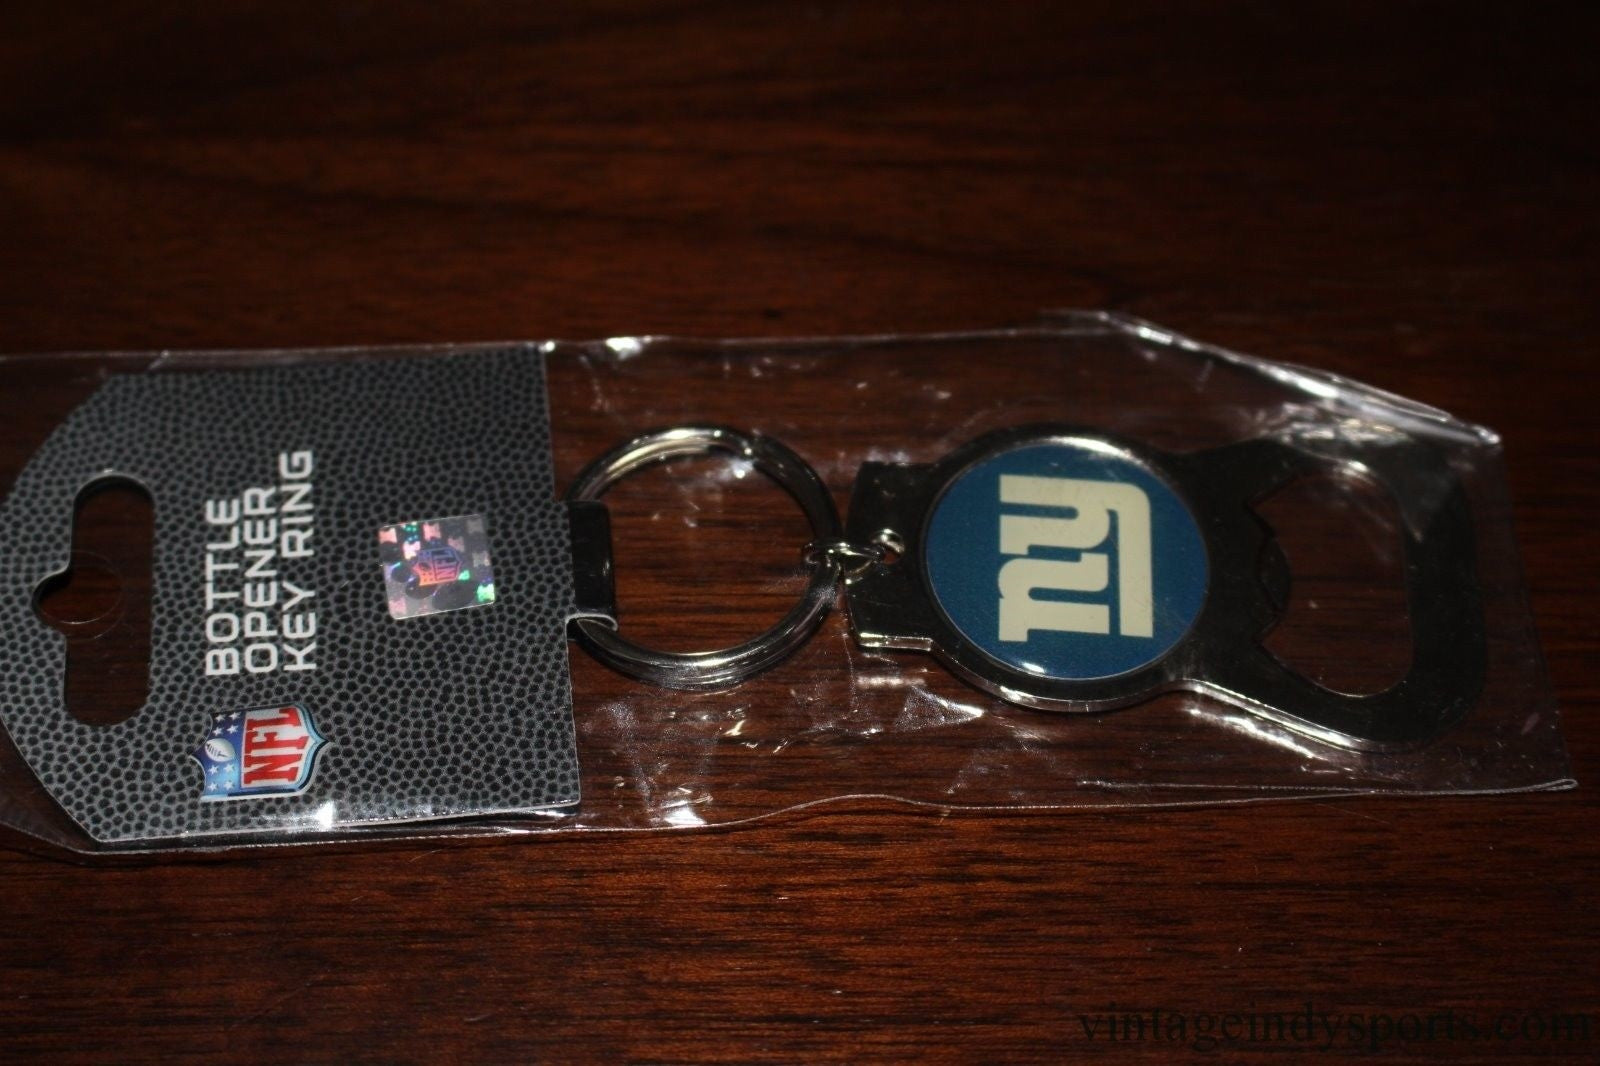 New York Giants Bottle Opener Key Ring, New in Package - Vintage Indy Sports